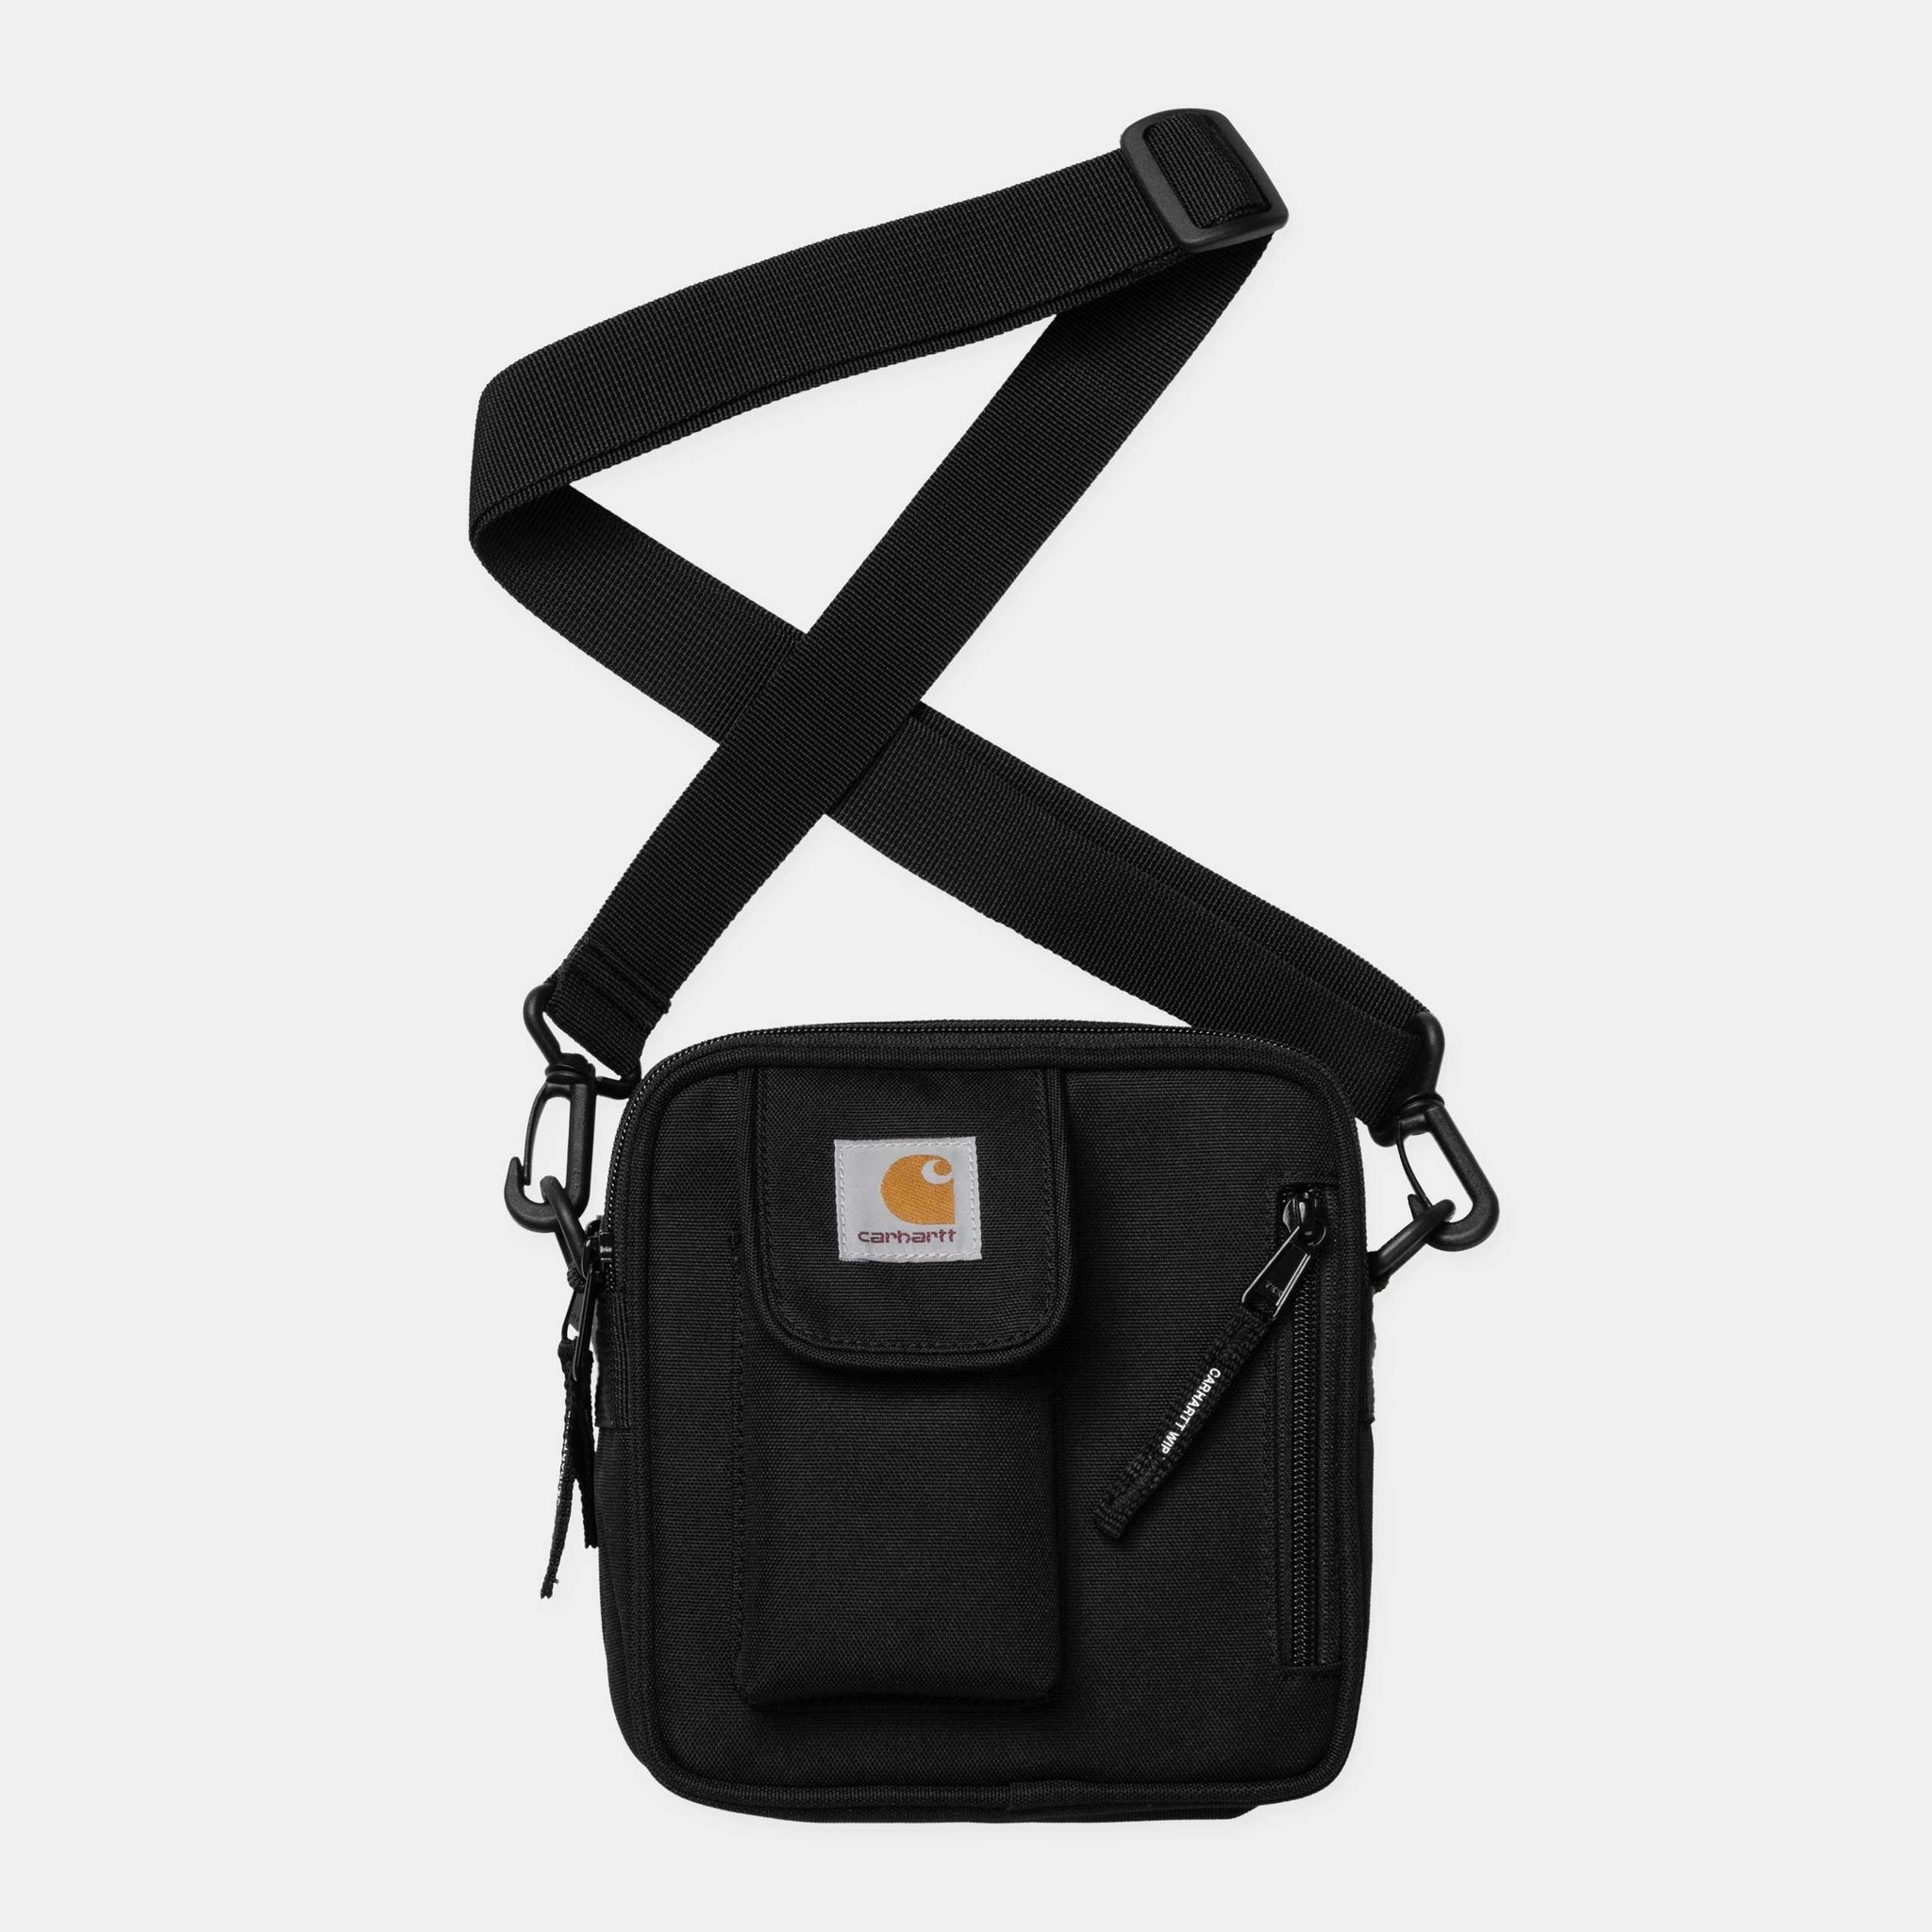 Carhartt Carhartt Essentials Bag